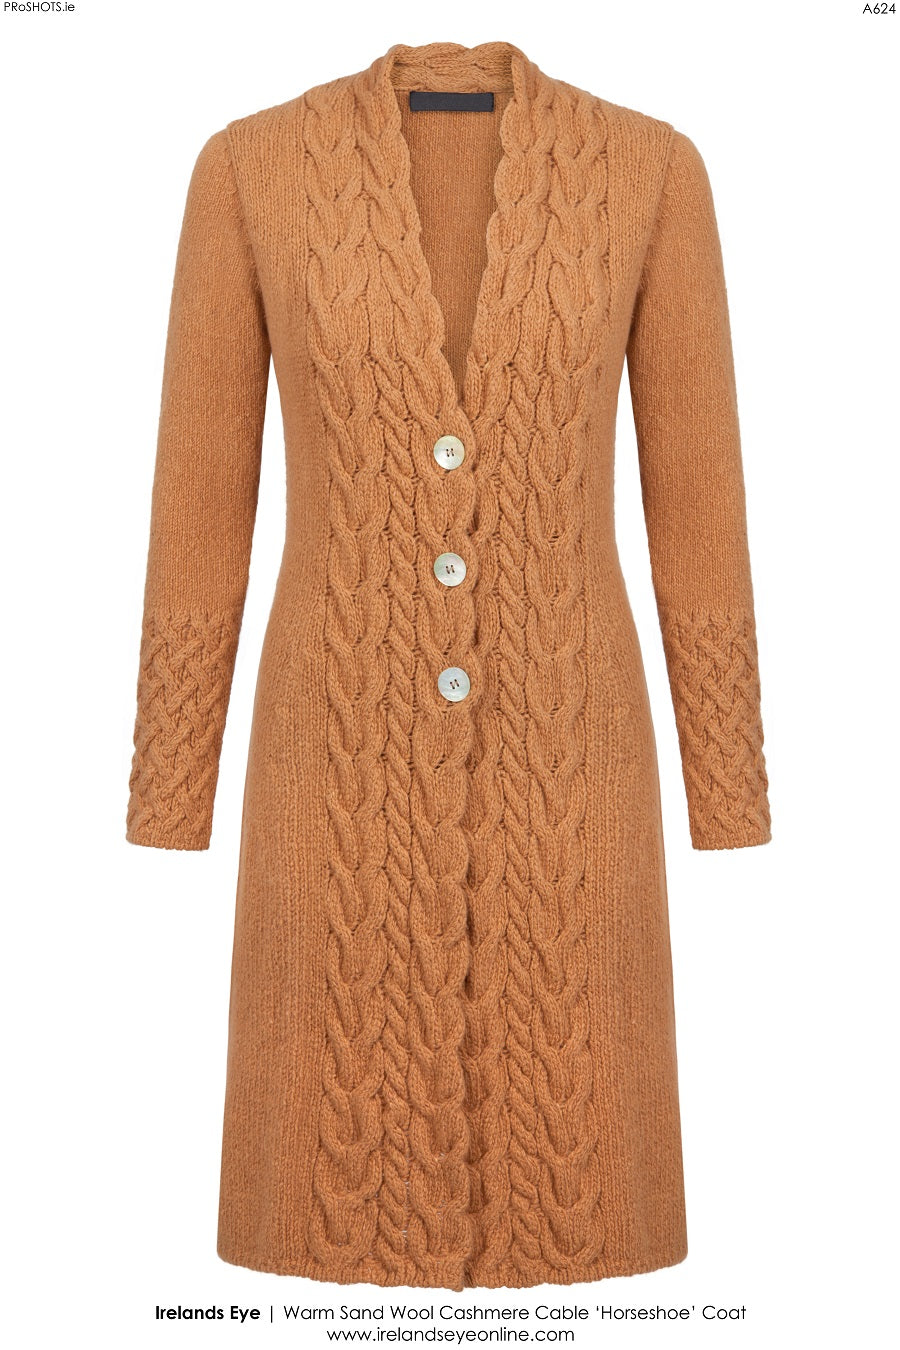 Ladies Knitted Horseshoe Cable Coat – Warm Sand